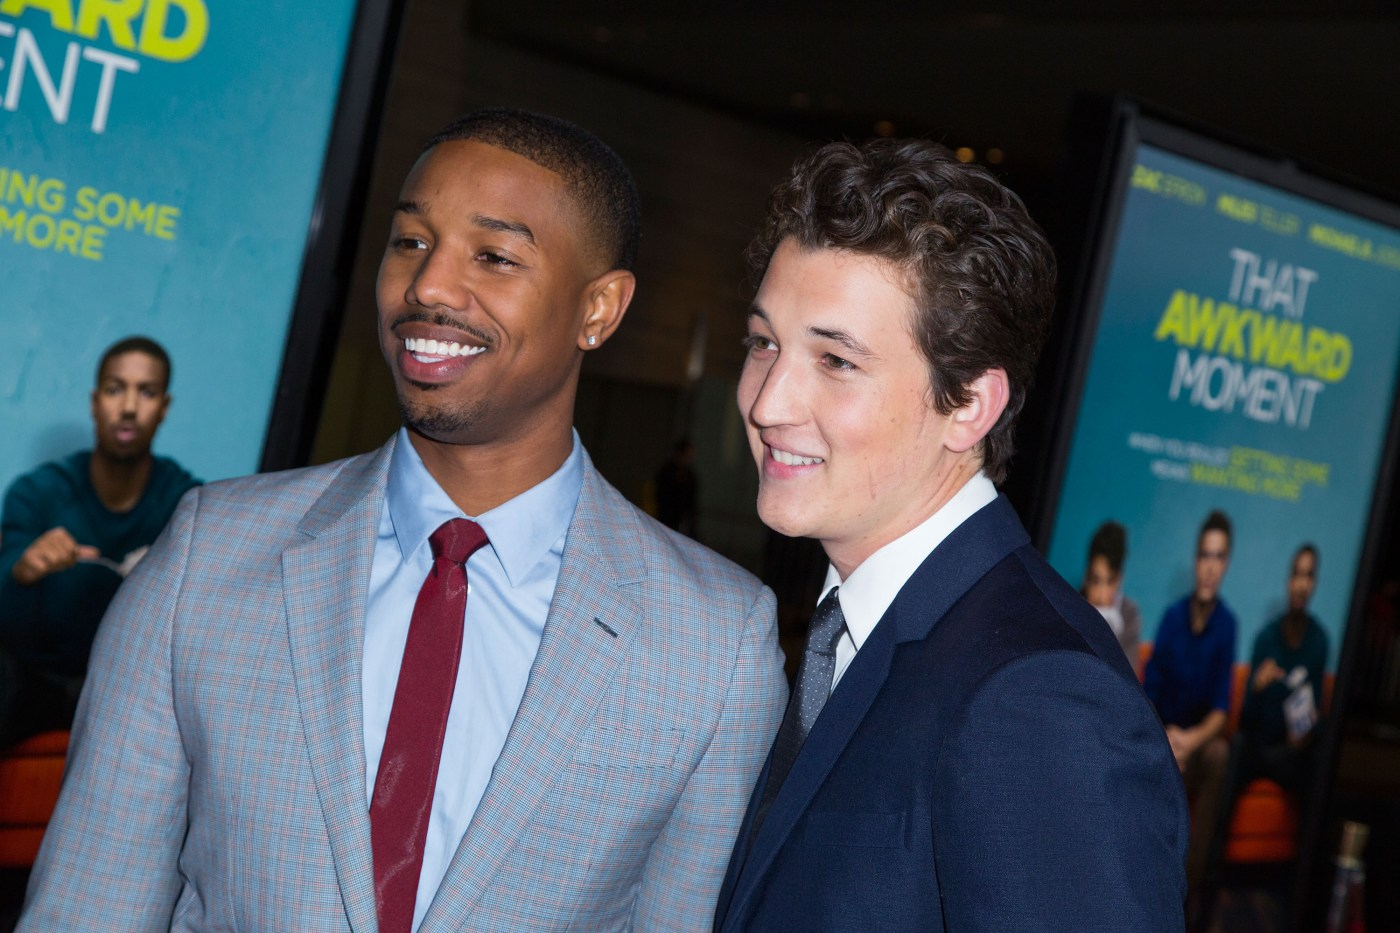 Actors Michael B. Jordan and Miles Teller attend the Los Angeles Premiere of  That Awkward Moment  on January 27, 2014 in Los Angeles.